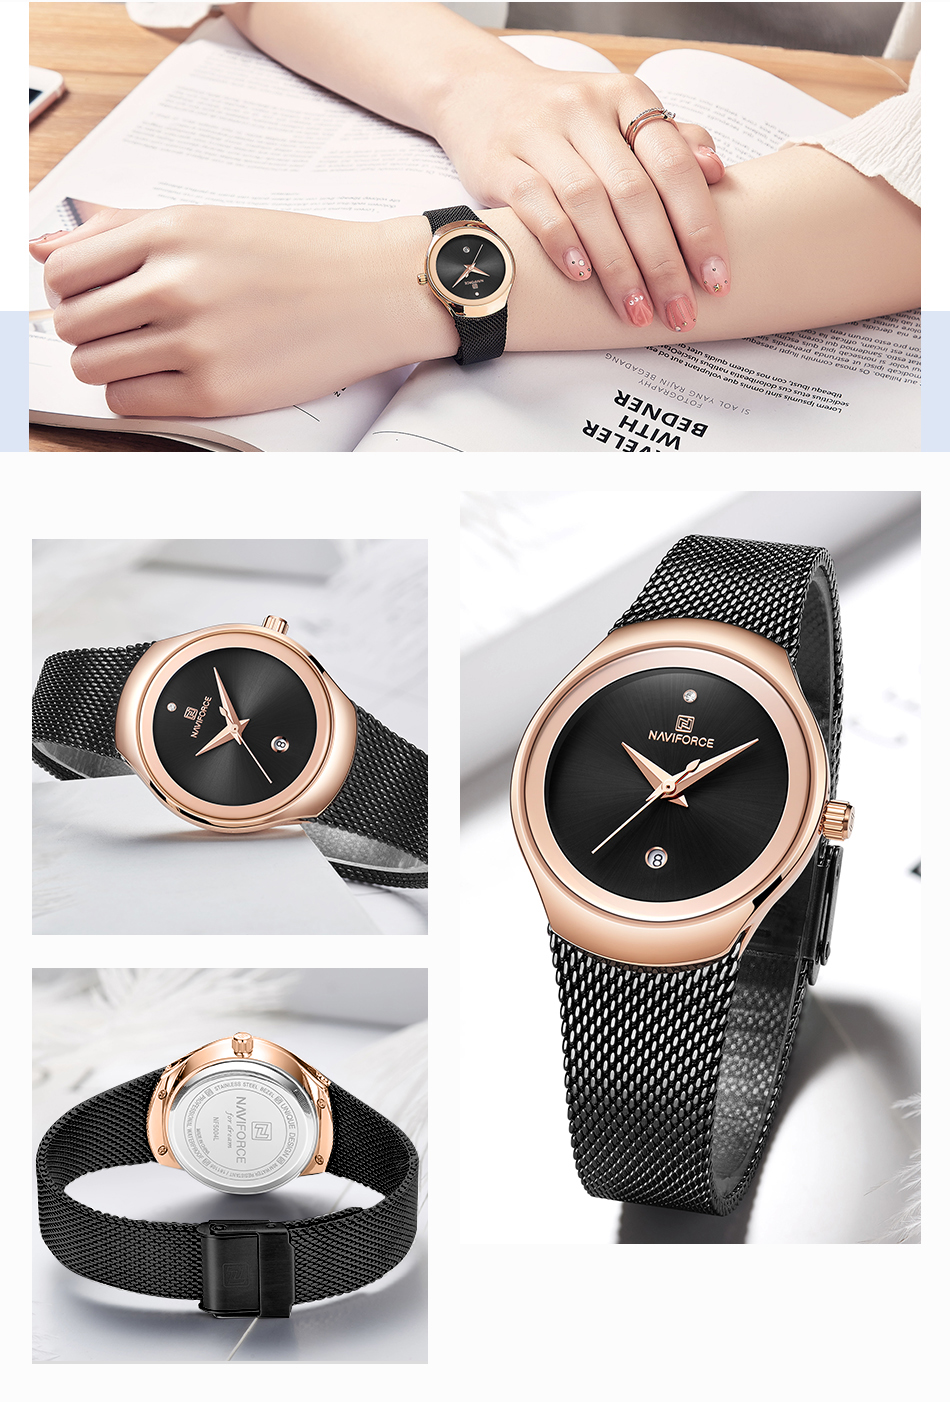 NAVIFORCE Women Watches Top Luxury Brand Lady Fashion Casual Simple Steel Mesh Strap Wristwatch Gift for Girls Relogio Feminino (9)